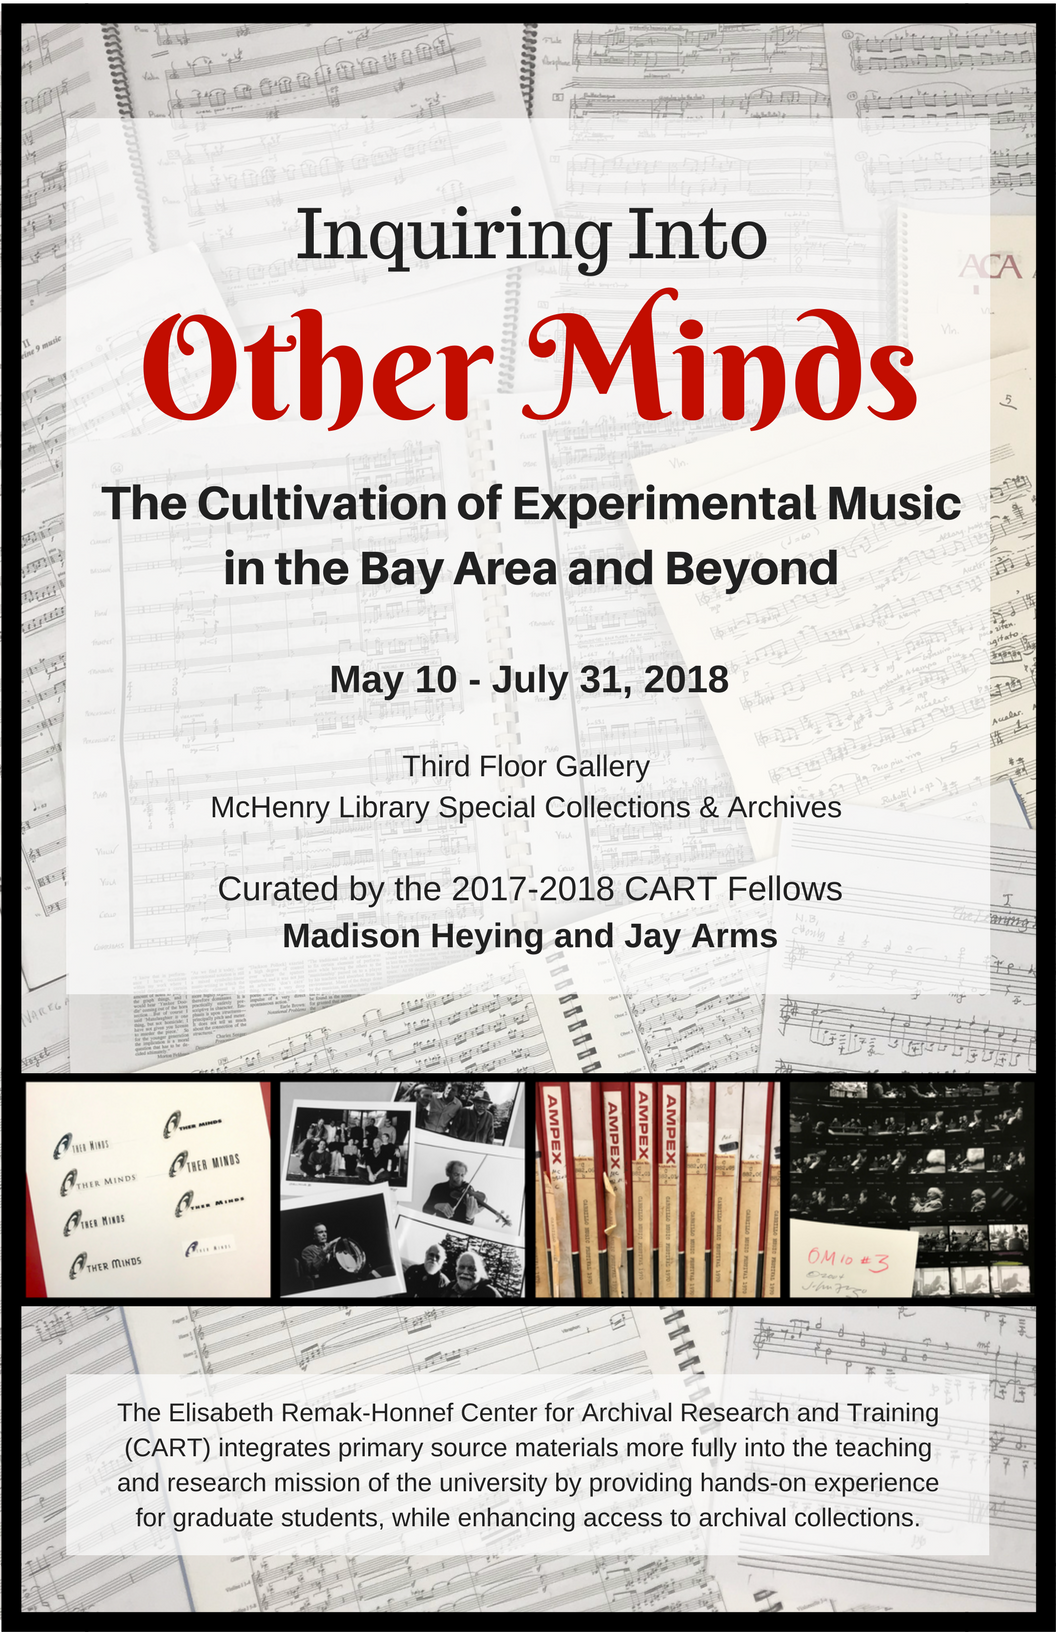 other minds exhibit poster